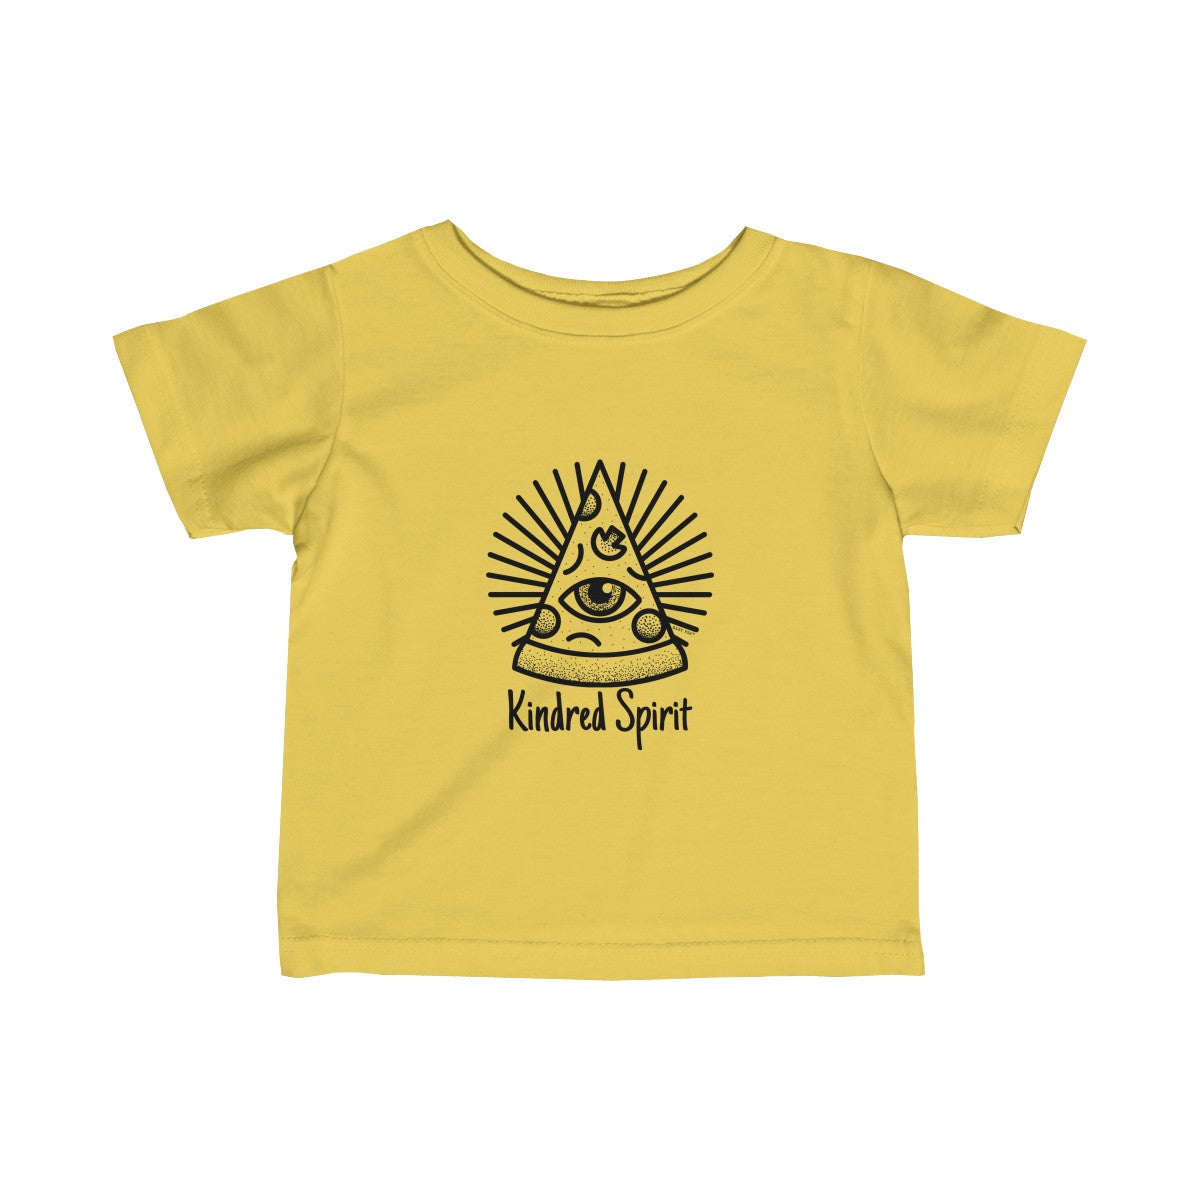 Kindred Spirit Pizza | Infant Fine Jersey Tee | 12 Colors - Baby Pea Clothing Fashion for Babies & Kids of all ages